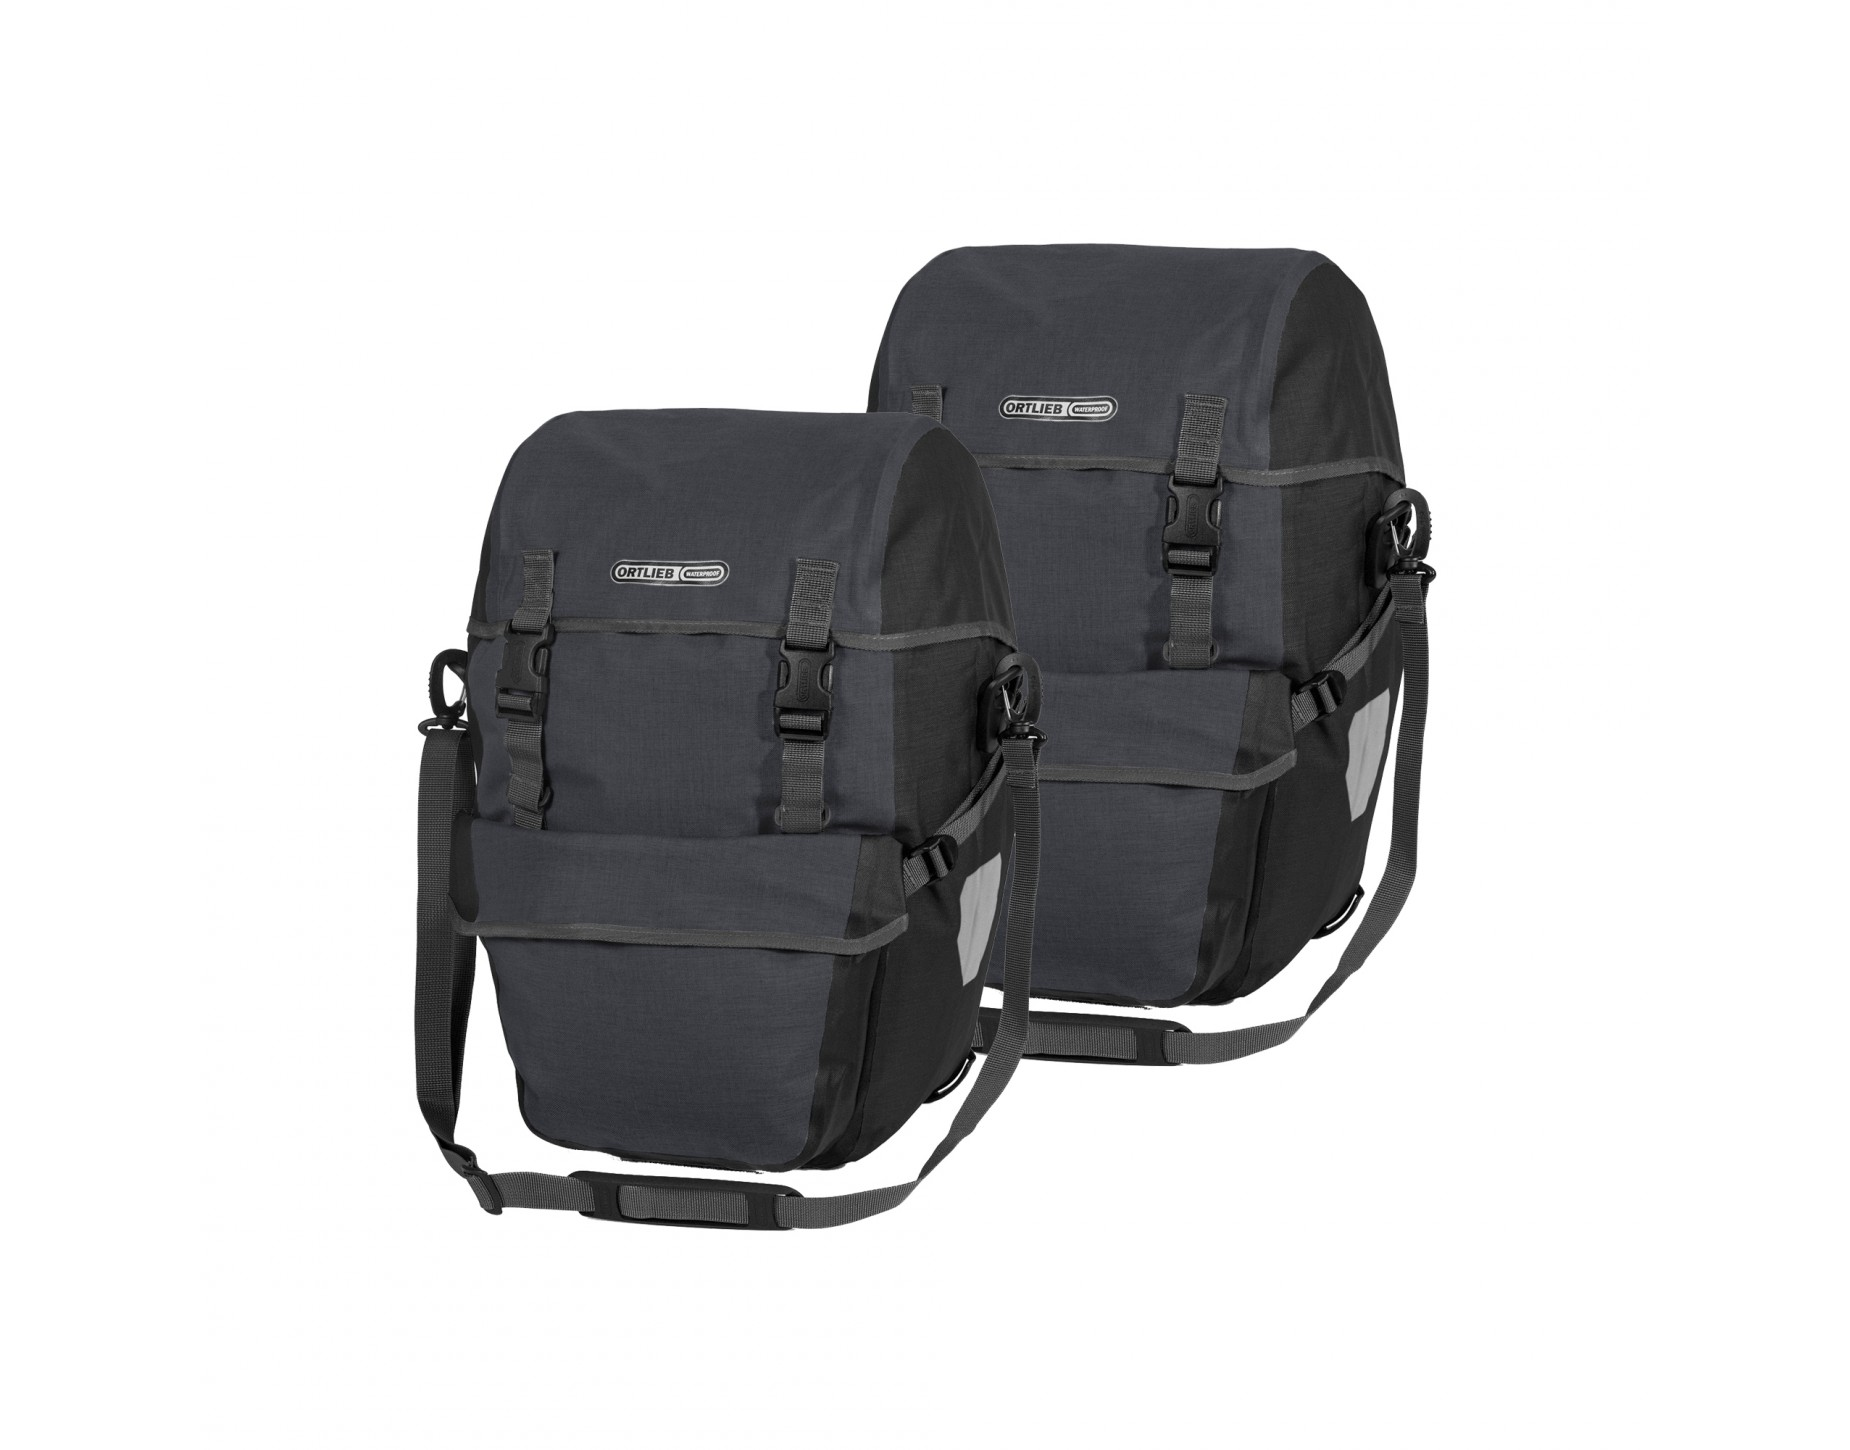 Ortlieb Bike Packer Plus Set Consisting Of Two Pannier Bags